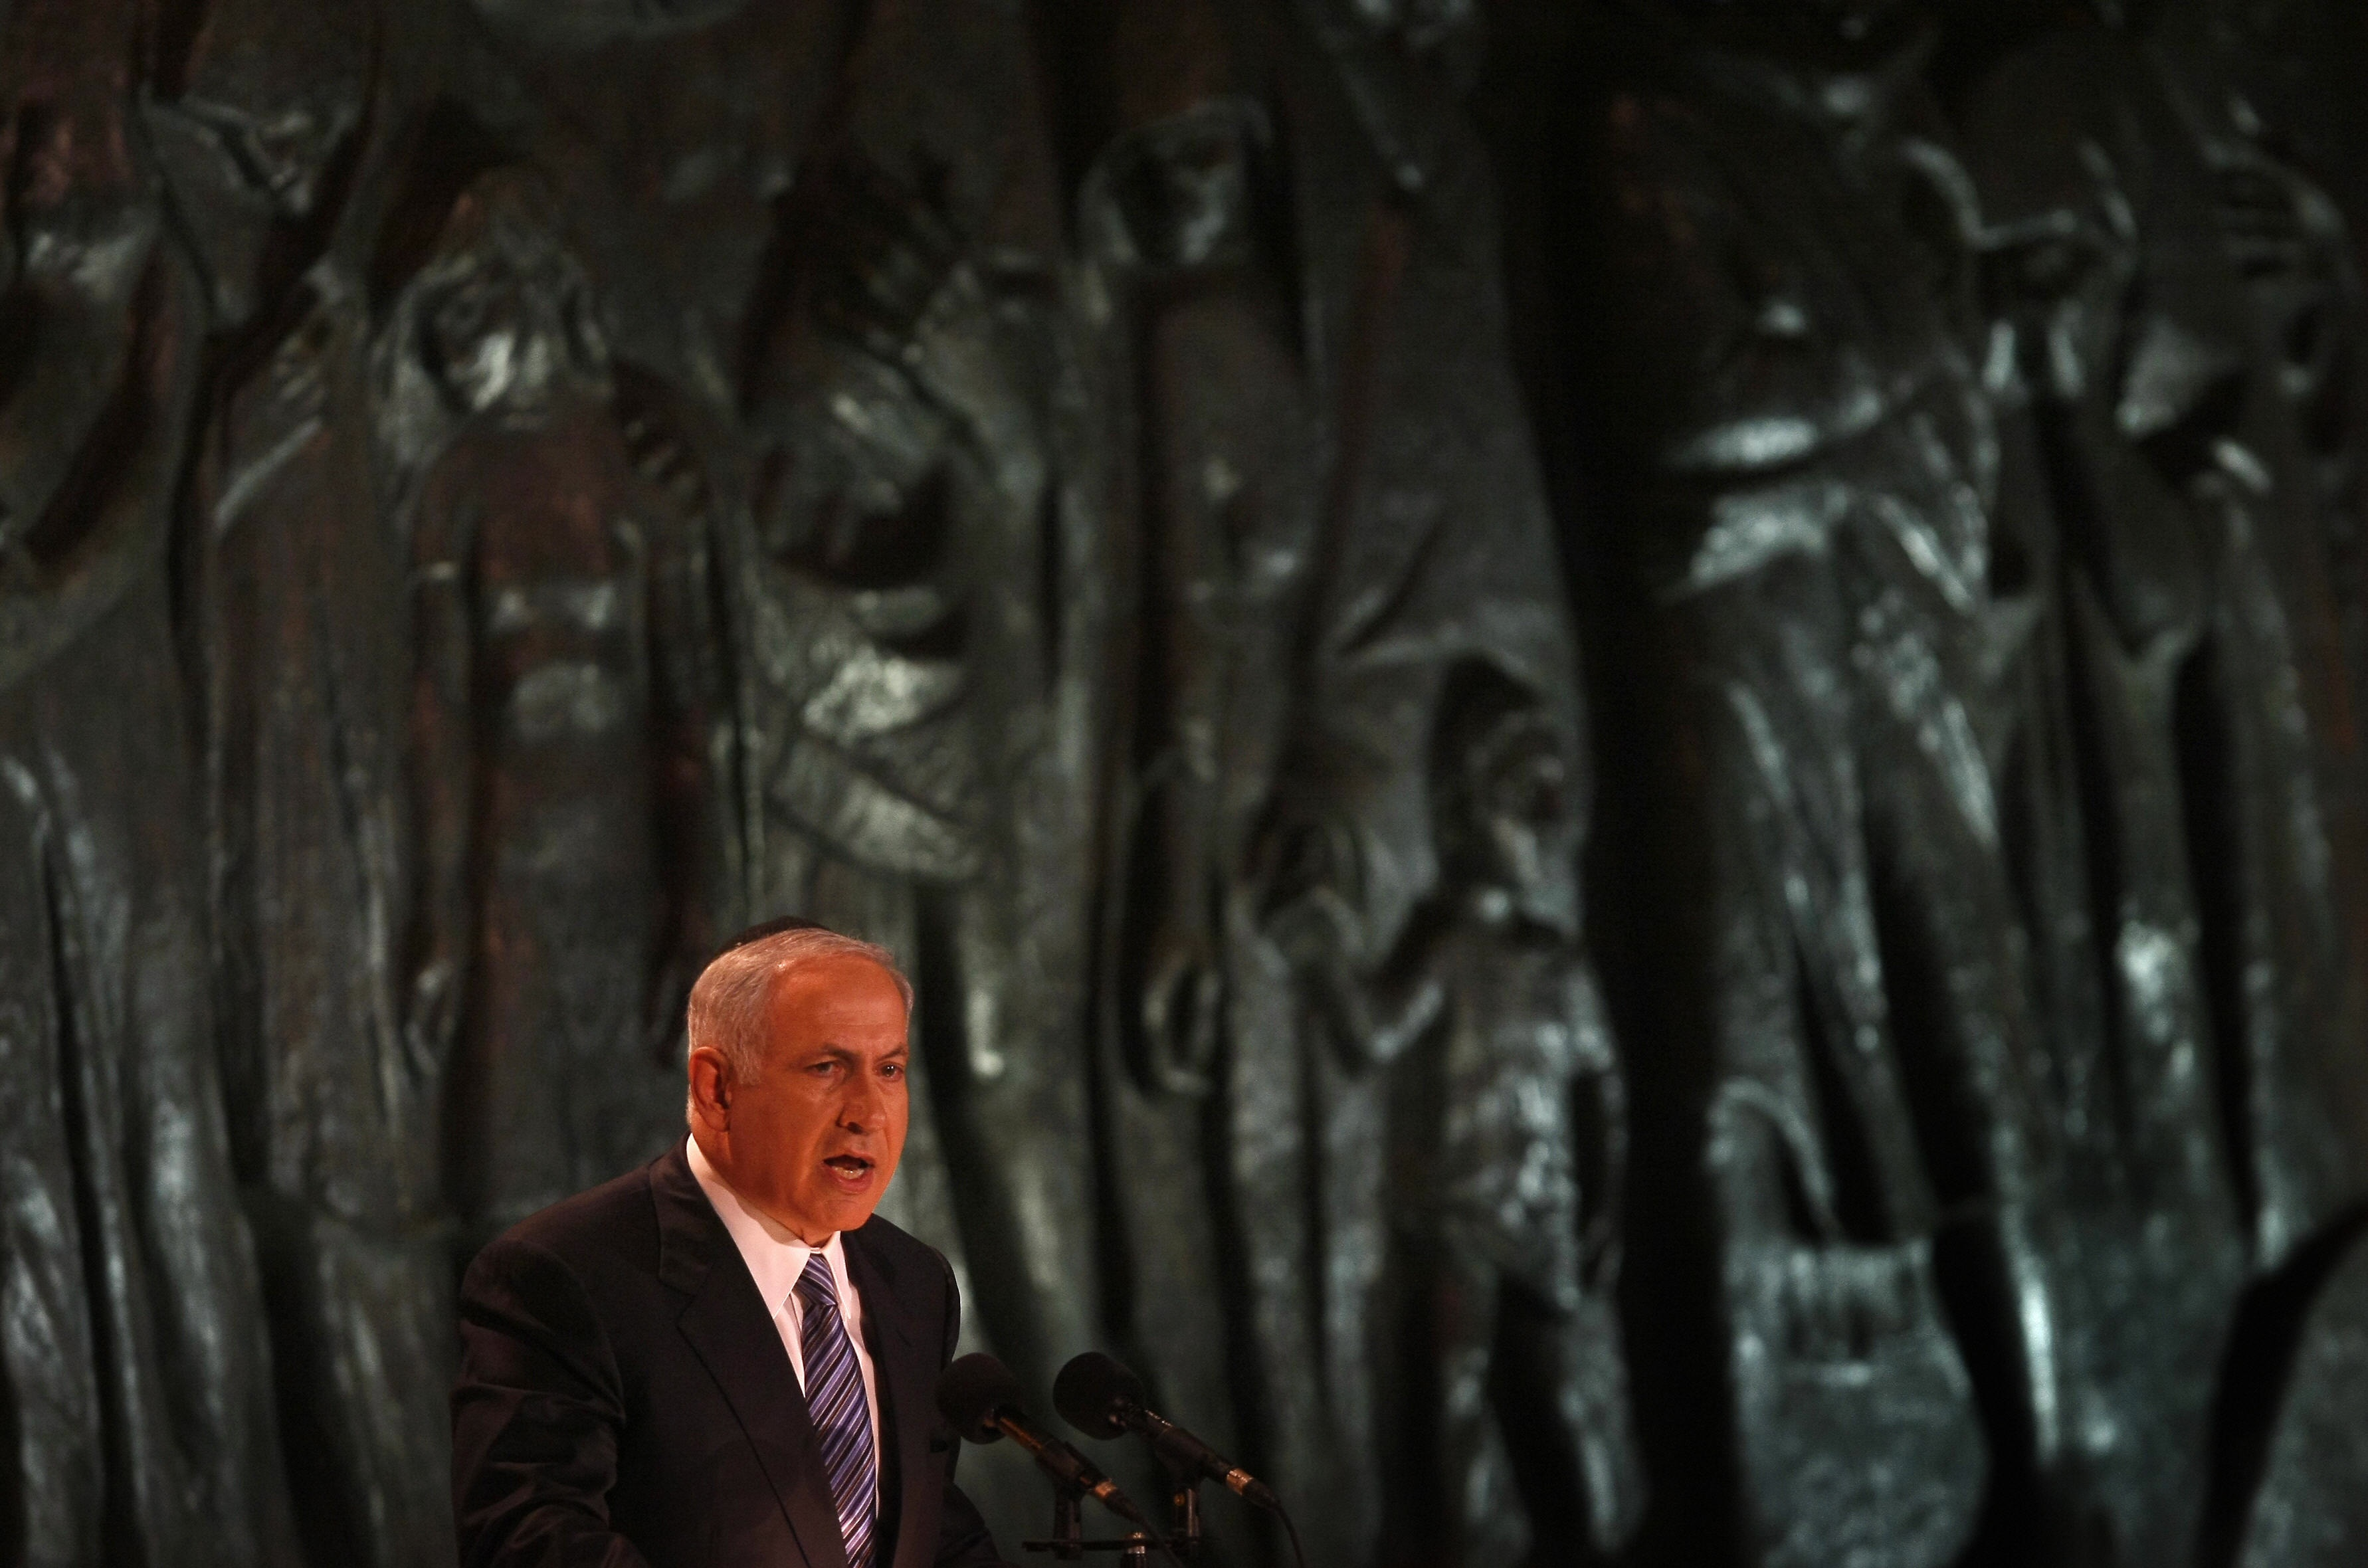 MENAHEM KAHANA/AFP/Getty Images. Israeli Prime Minister Benjamin Netanyahu speaks at the opening ceremony of the Holocaust Remembrance Day at the Yad Vashem Holocaust national memorial in Jerusalem, on April 20, 2009. Israel began marking Remembrance Day at sundown with a ceremony to the six million Jews killed by the Nazis during World War II. More than 230,000 Holocaust survivors currently live in Israel, according to estimates by advocacy groups.